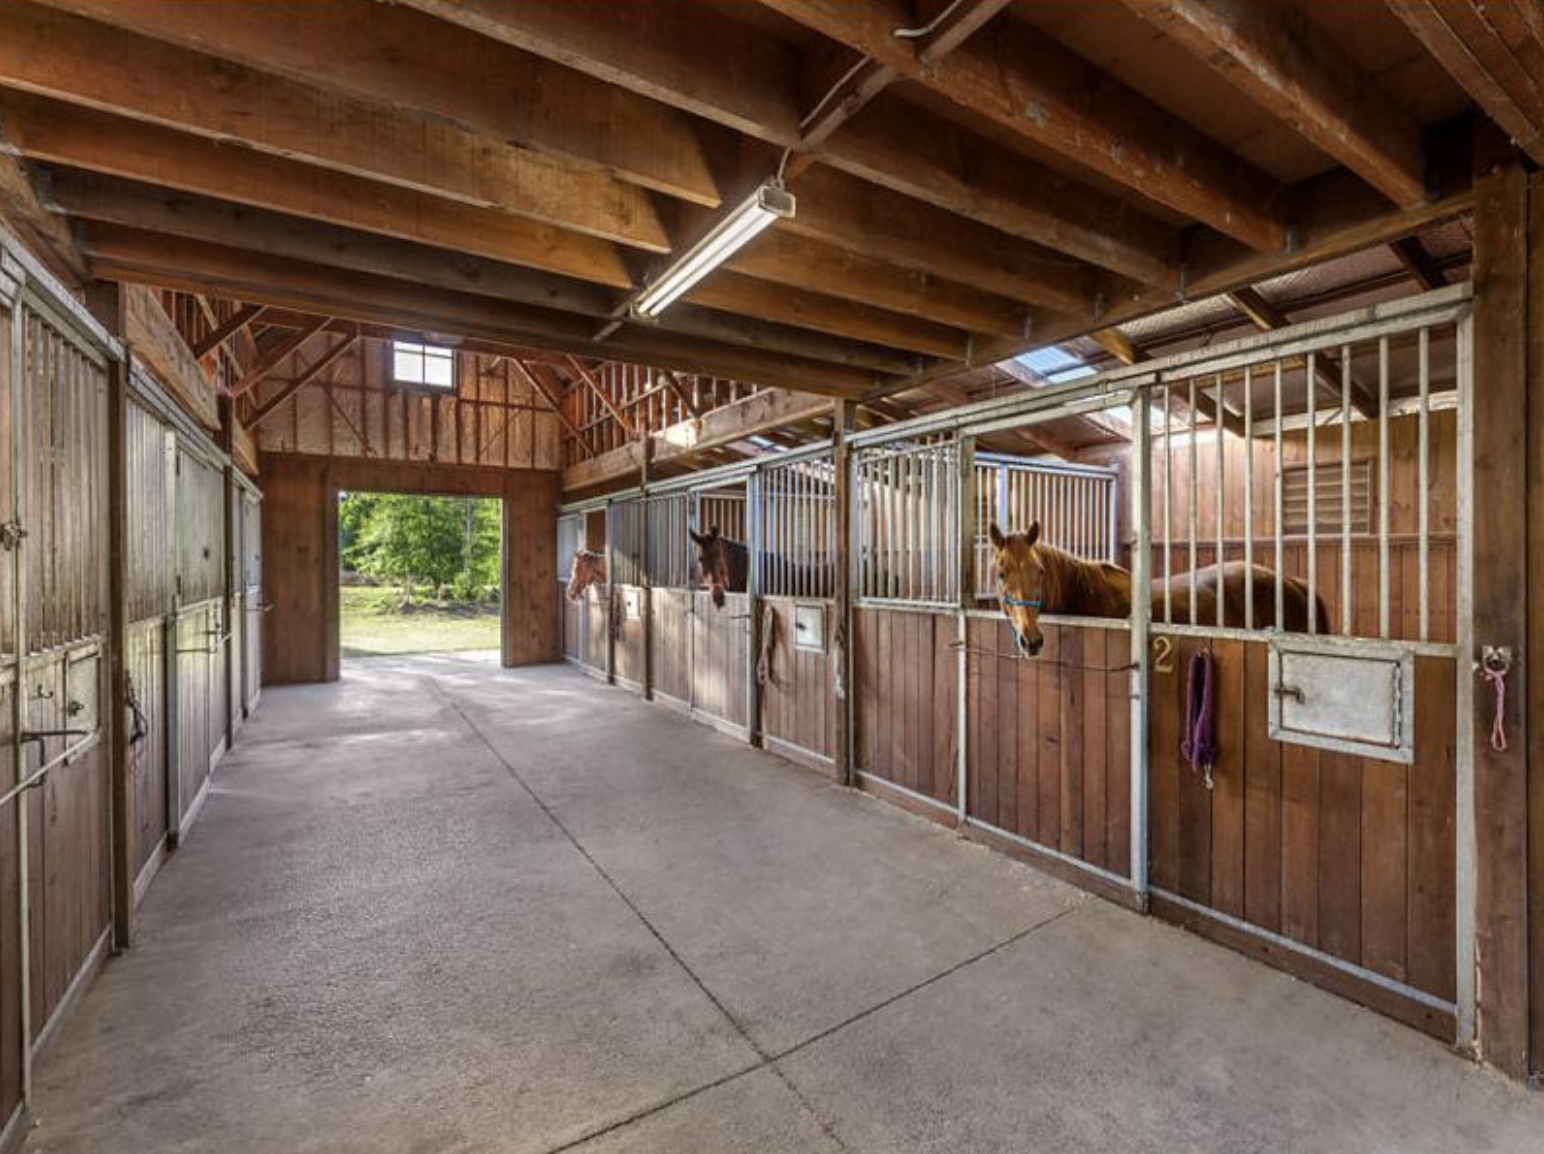 The Stables - Our stable block has been created to give all horses the royal treatment, regardless of their size. Our large boxes (4x6m) mean that horses who are here for rehabilitation will have more than enough space to recover. The wash bay also has both hot and cold wash options, perfect for Australian winters and summers. But it's not all about the horses, we've also got a tea/coffee station, bathroom and tackroom for storage.